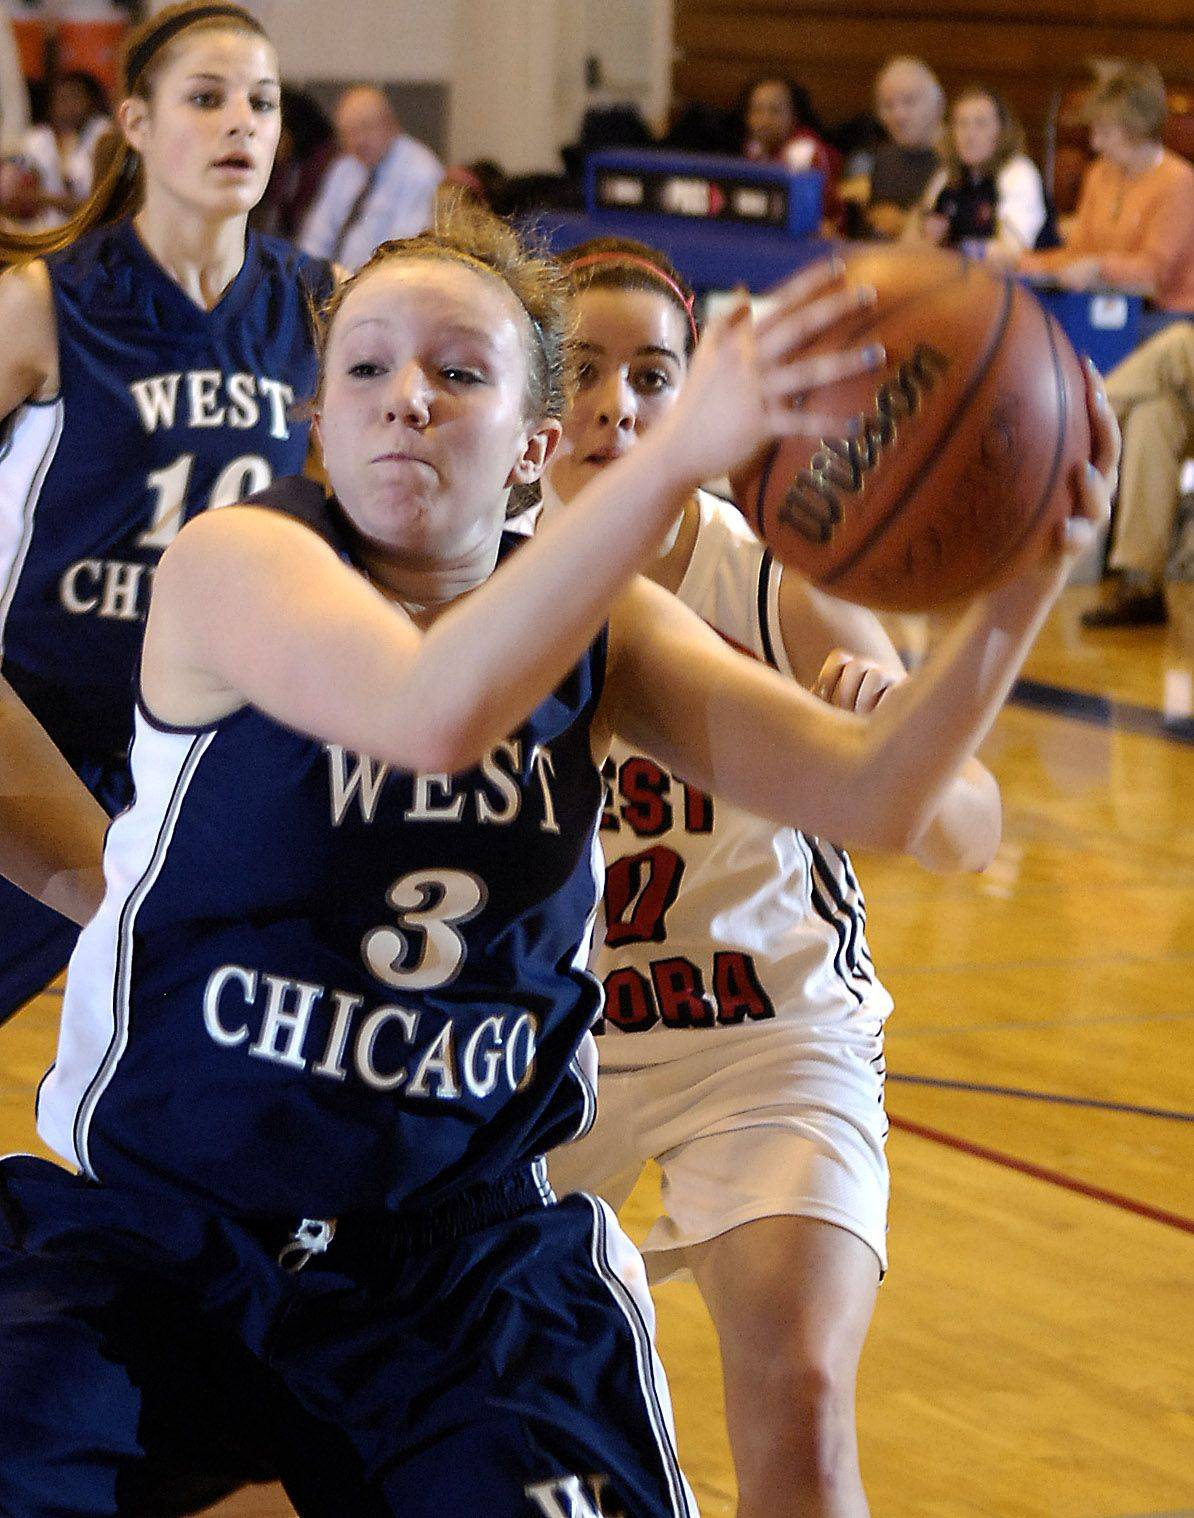 West Chicago's Claire Monroe grabs a rebound in front of West Aurora's Abriya Zeitz during Thursday's game in Aurora.